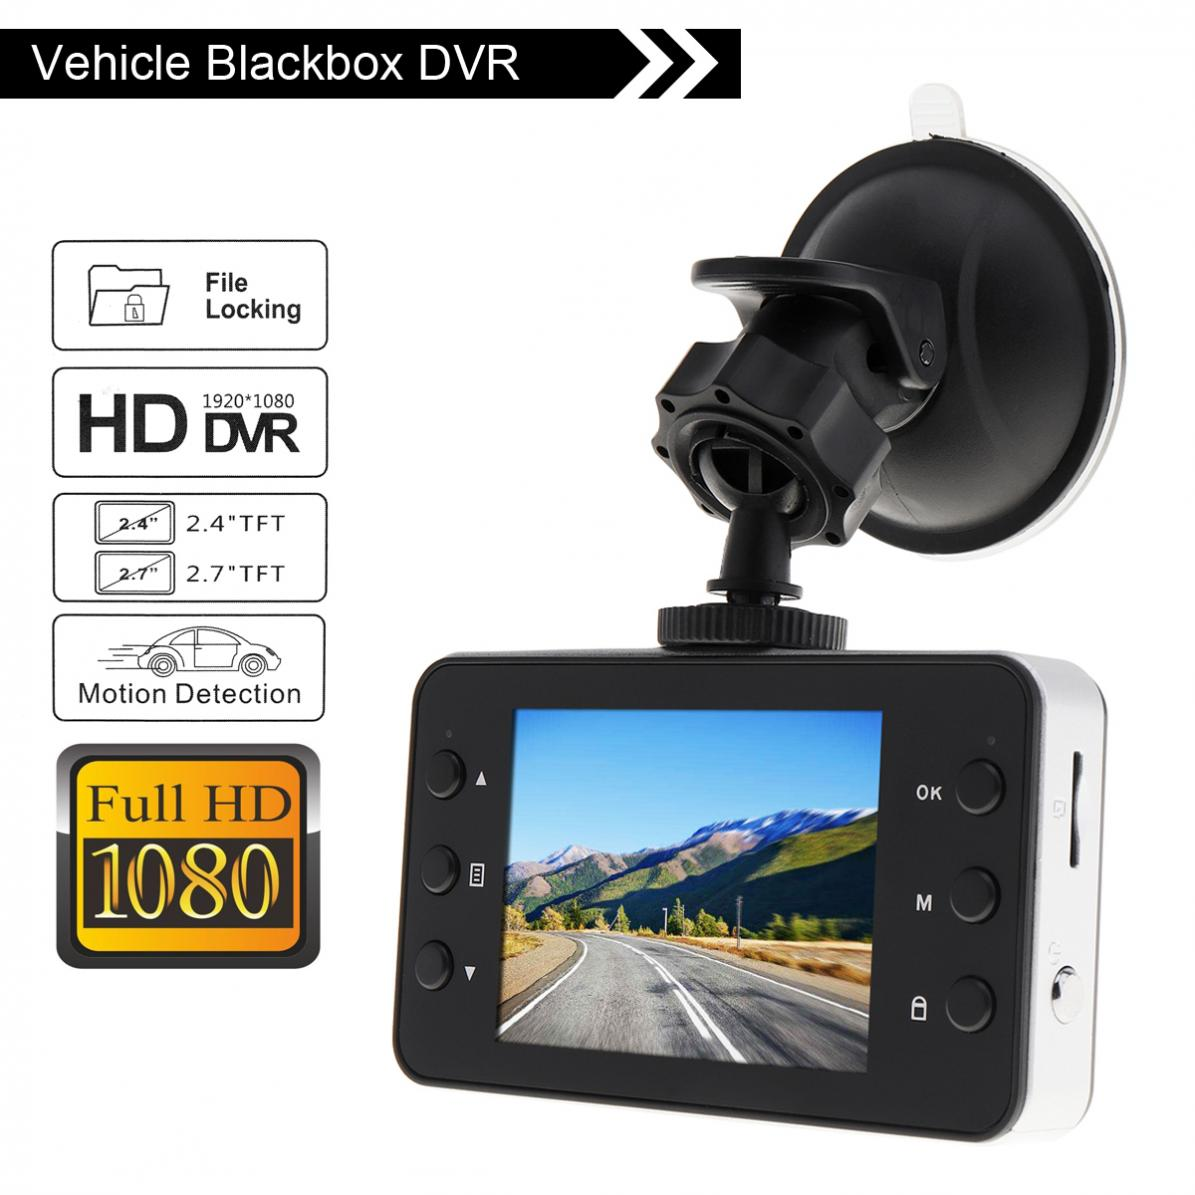 Universal 2.4 Inch 1280 x 720 1080P HD Night Vision Car DVR Camera Video Recorder Dash Cam G-sensorUniversal 2.4 Inch 1280 x 720 1080P HD Night Vision Car DVR Camera Video Recorder Dash Cam G-sensor